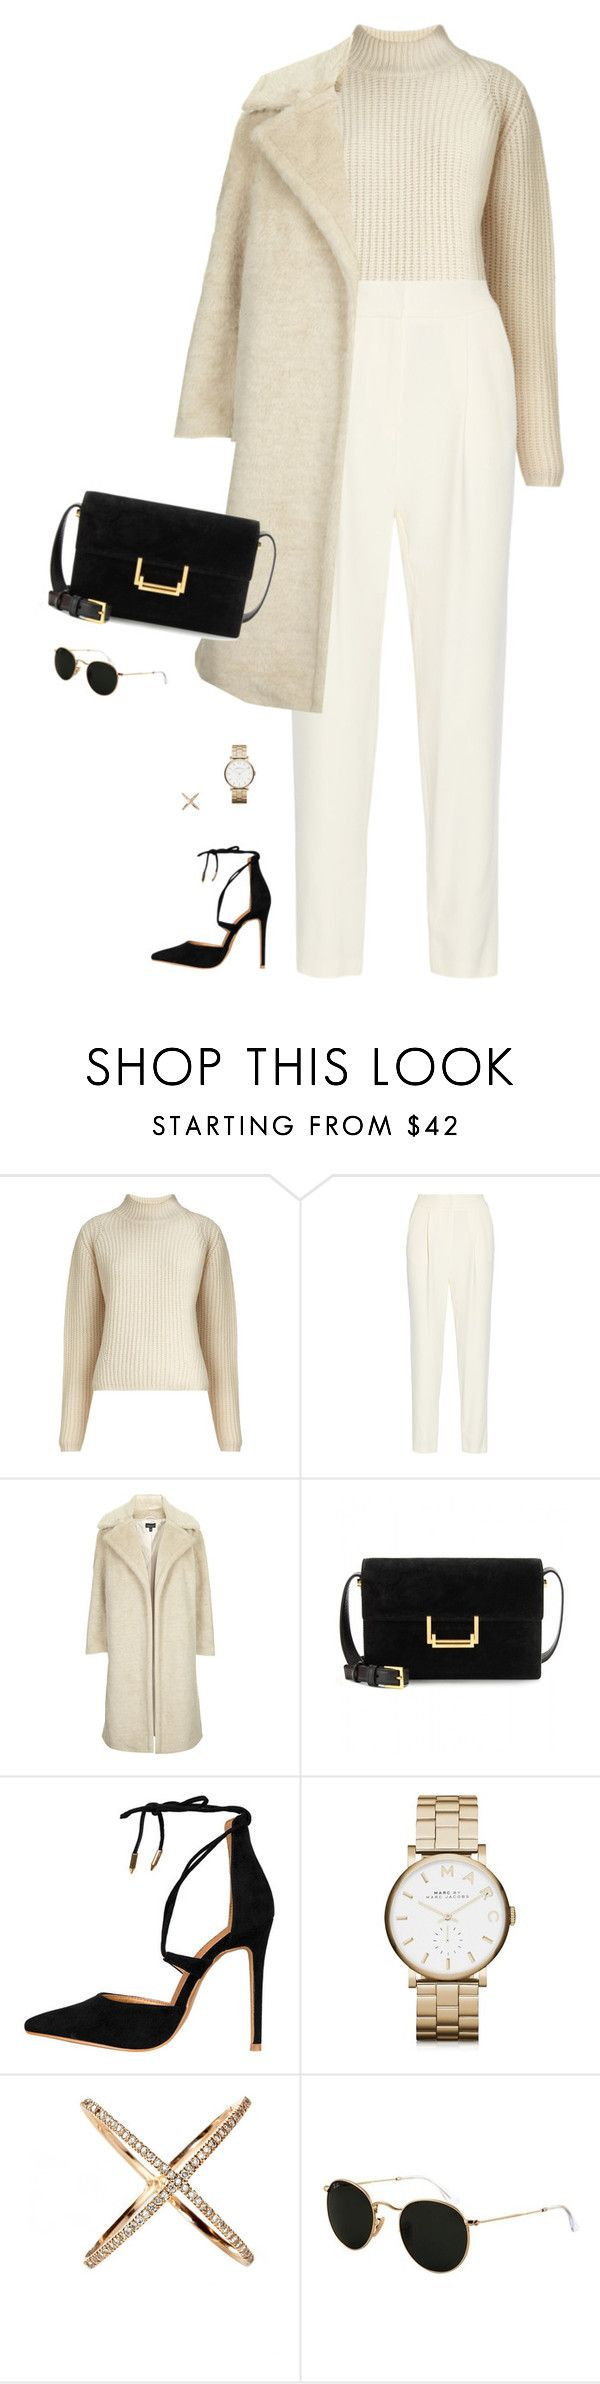 """""""Cream"""" by llsbo ❤ liked on Polyvore featuring Whistles, ADAM, Topshop, Yves Saint Laurent, Marc by Marc Jacobs, Eva Fehren and Ray-Ban"""